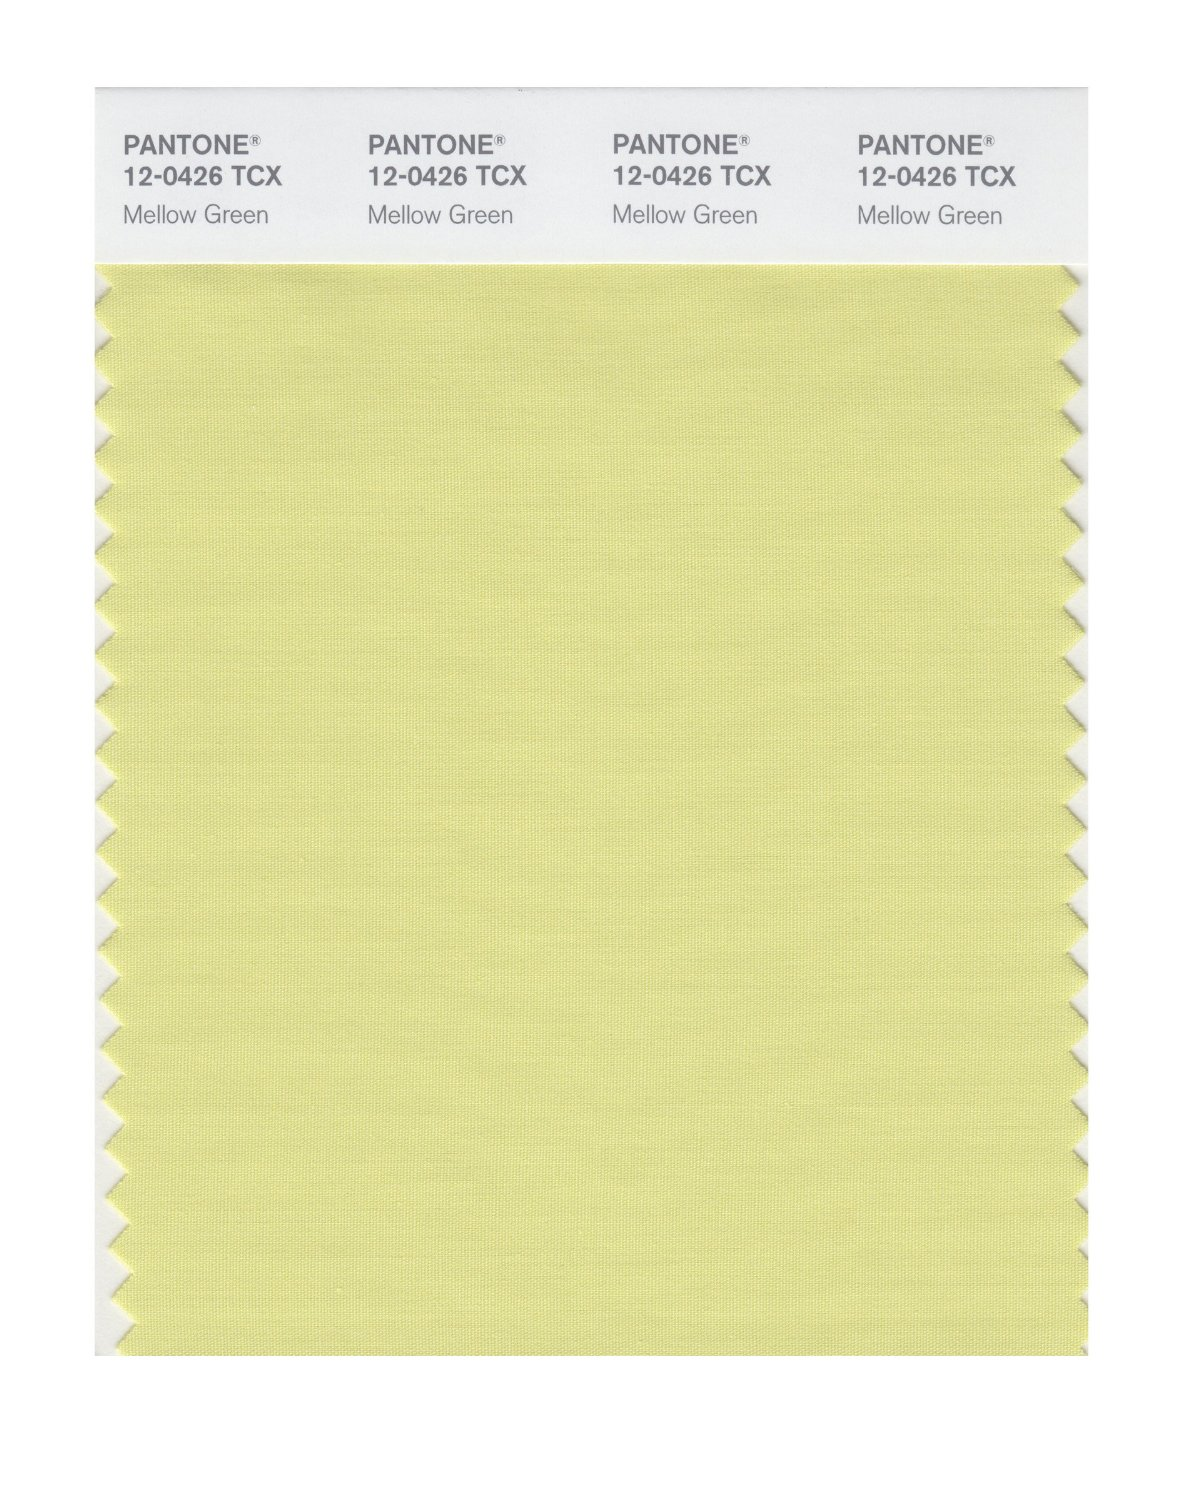 Pantone Smart Swatch 12-0426 Mellow Green